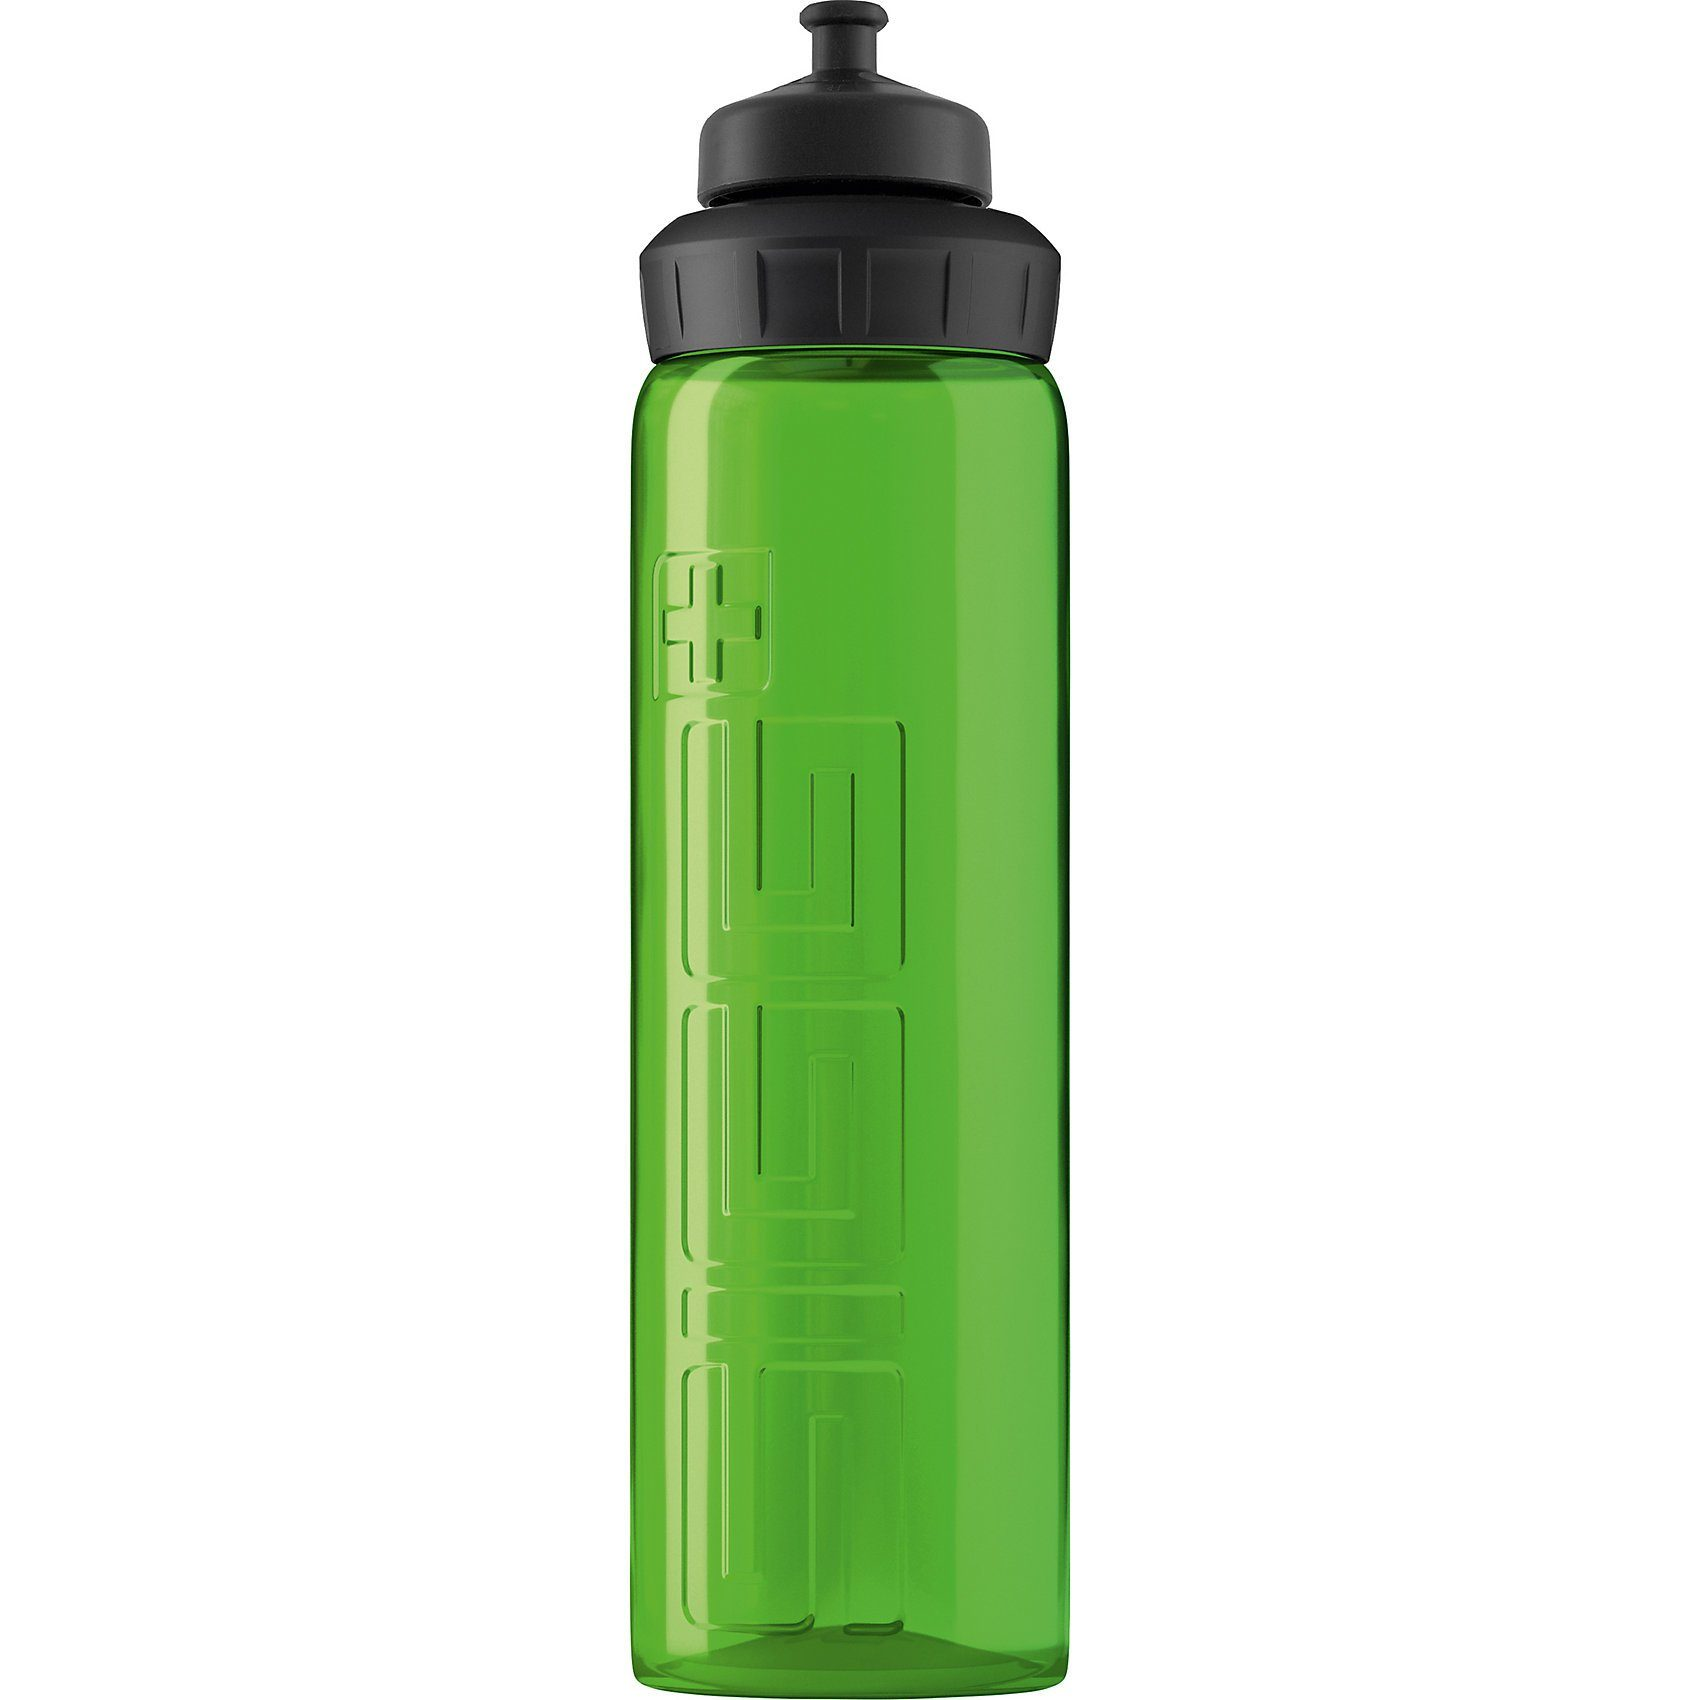 SIGG Trinkflasche VIVA 3-Stage Green transparent, 750 ml